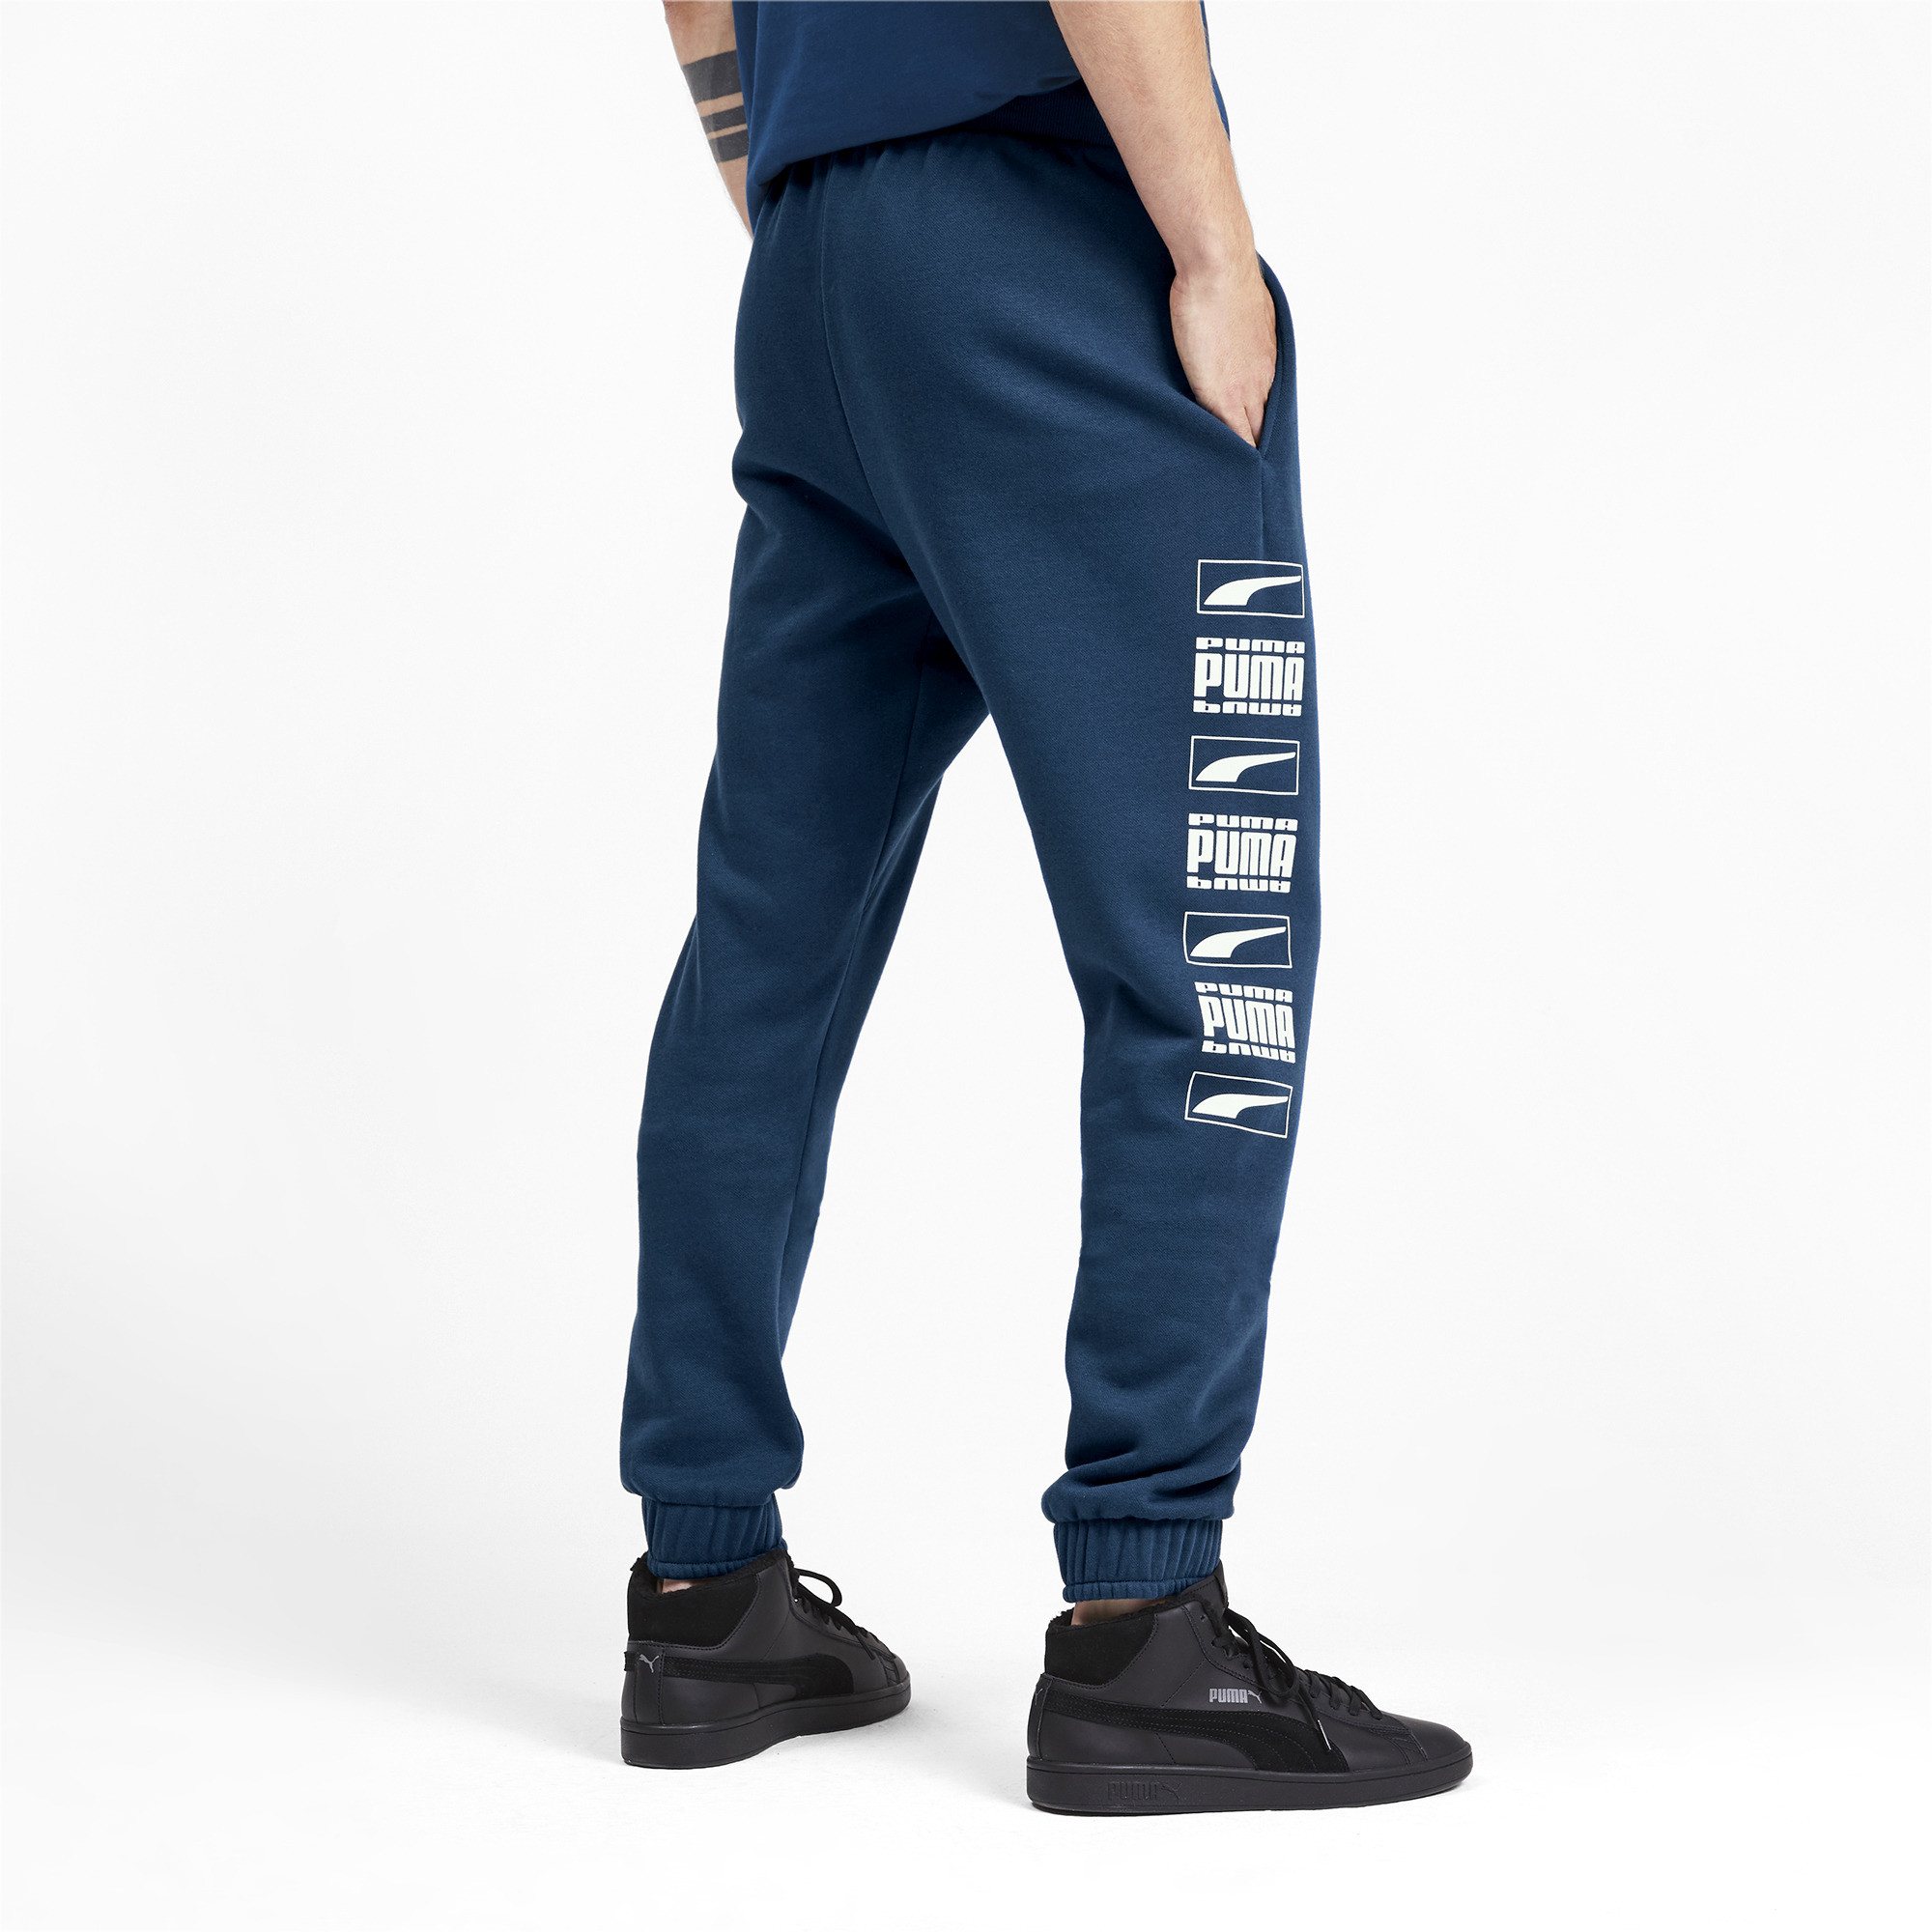 PUMA-Rebel-Bold-Men-039-s-Sweatpants-Men-Knitted-Pants-Basics thumbnail 5